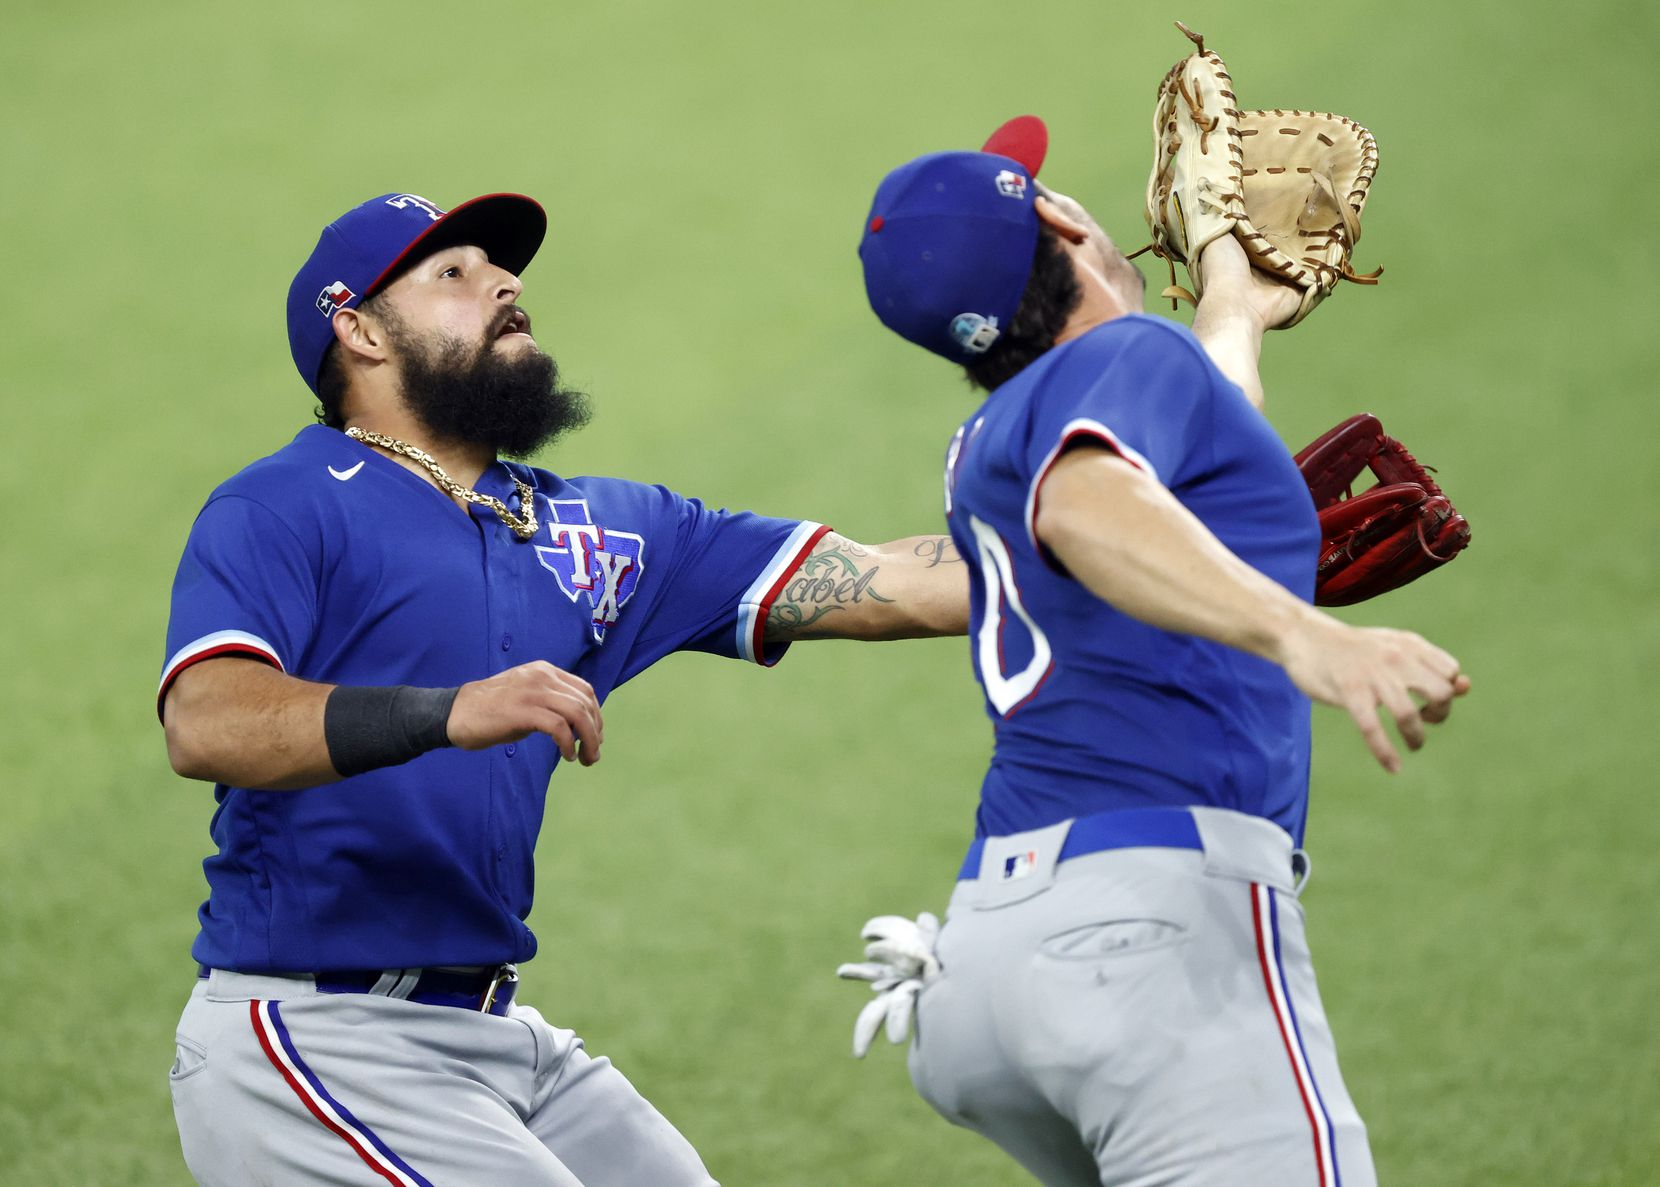 Texas Rangers second baseman Rougned Odor (left) reaches for a fly ball after first baseman Greg Bird called for it. The two nearly collided on the hit by Rob Refsnyder during a simulated Summer Camp game at Globe Life Field in Arlington, Texas, Thursday, July 9, 2020. (Tom Fox/The Dallas Morning News)